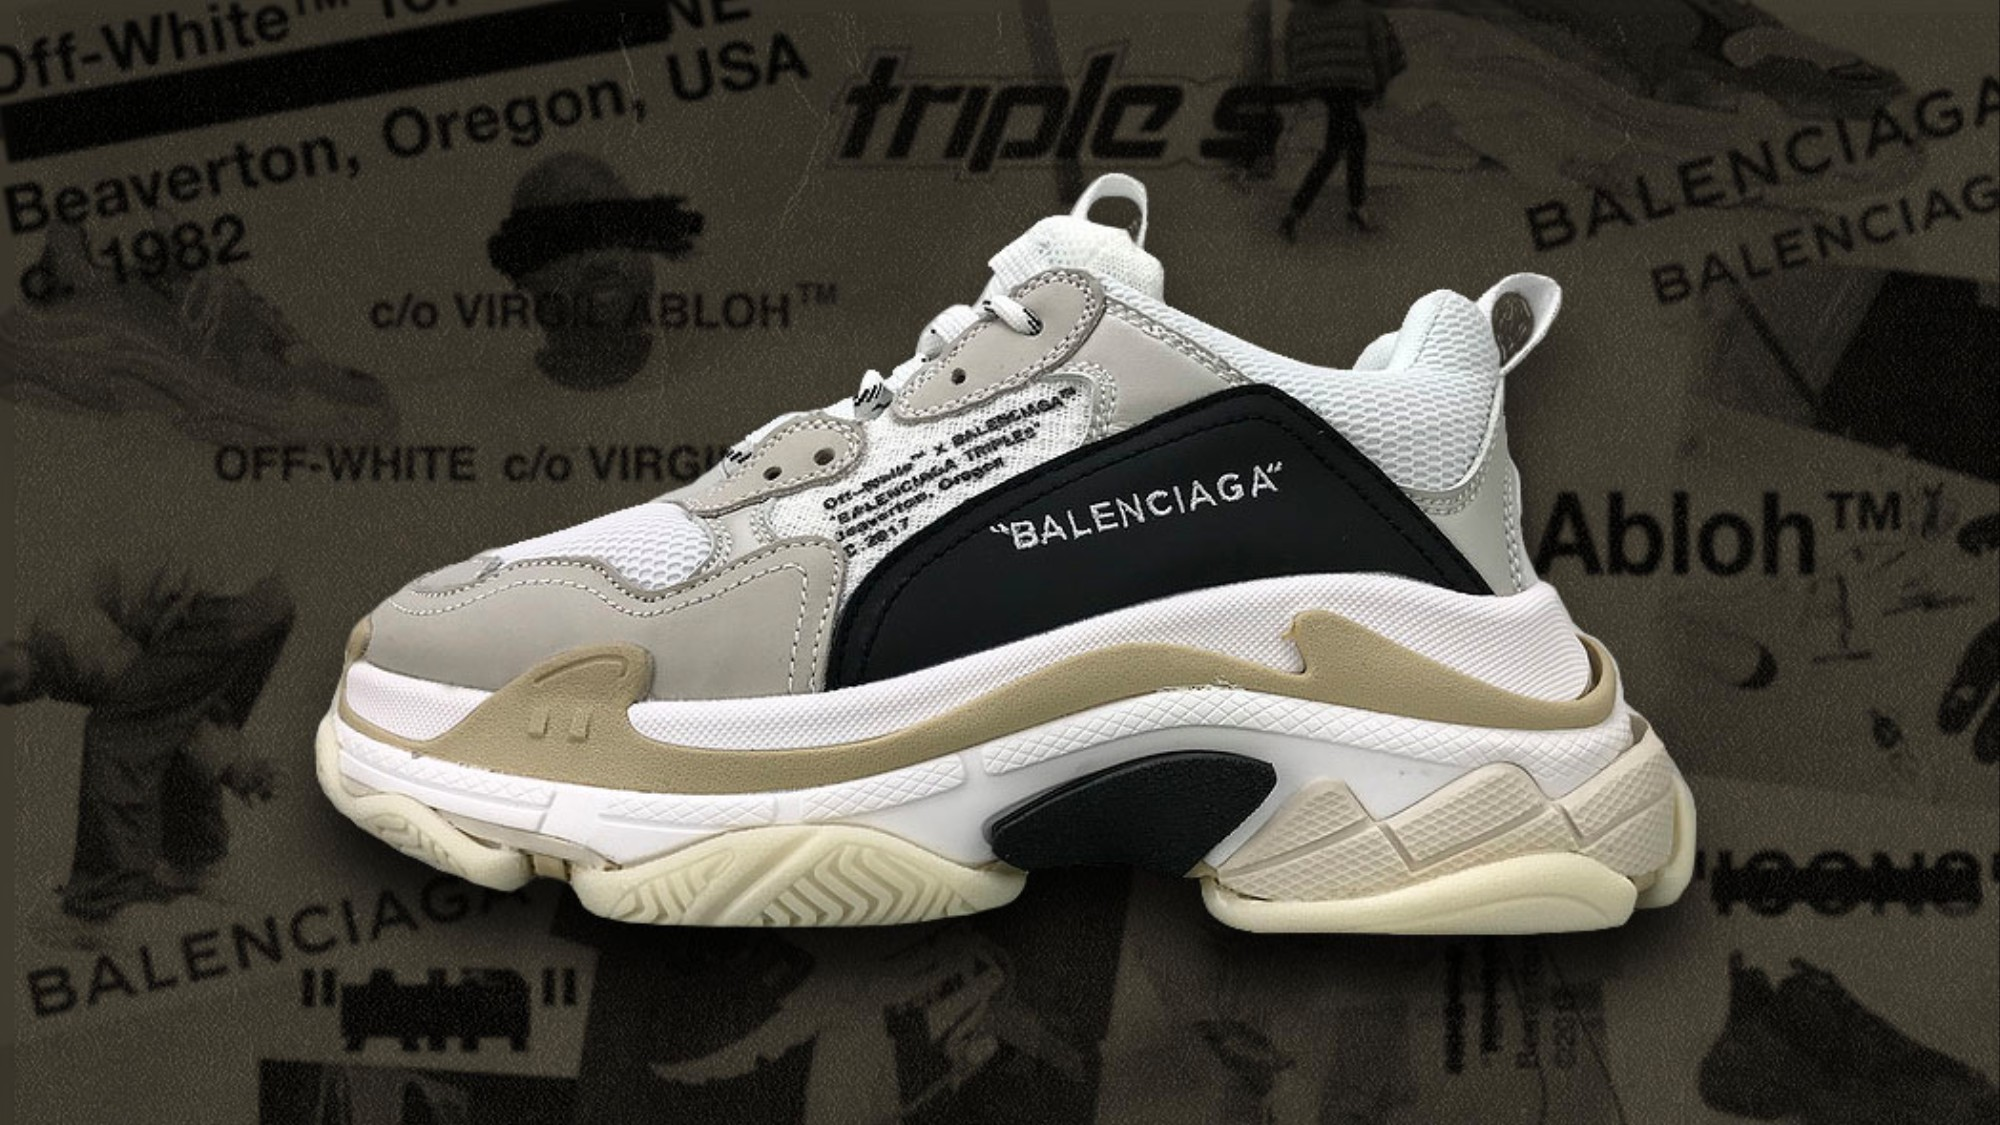 03609c5c66e0 Bootleggers Are Making Knockoff Designer Sneakers That Don't Even Exist IRL  - GARAGE